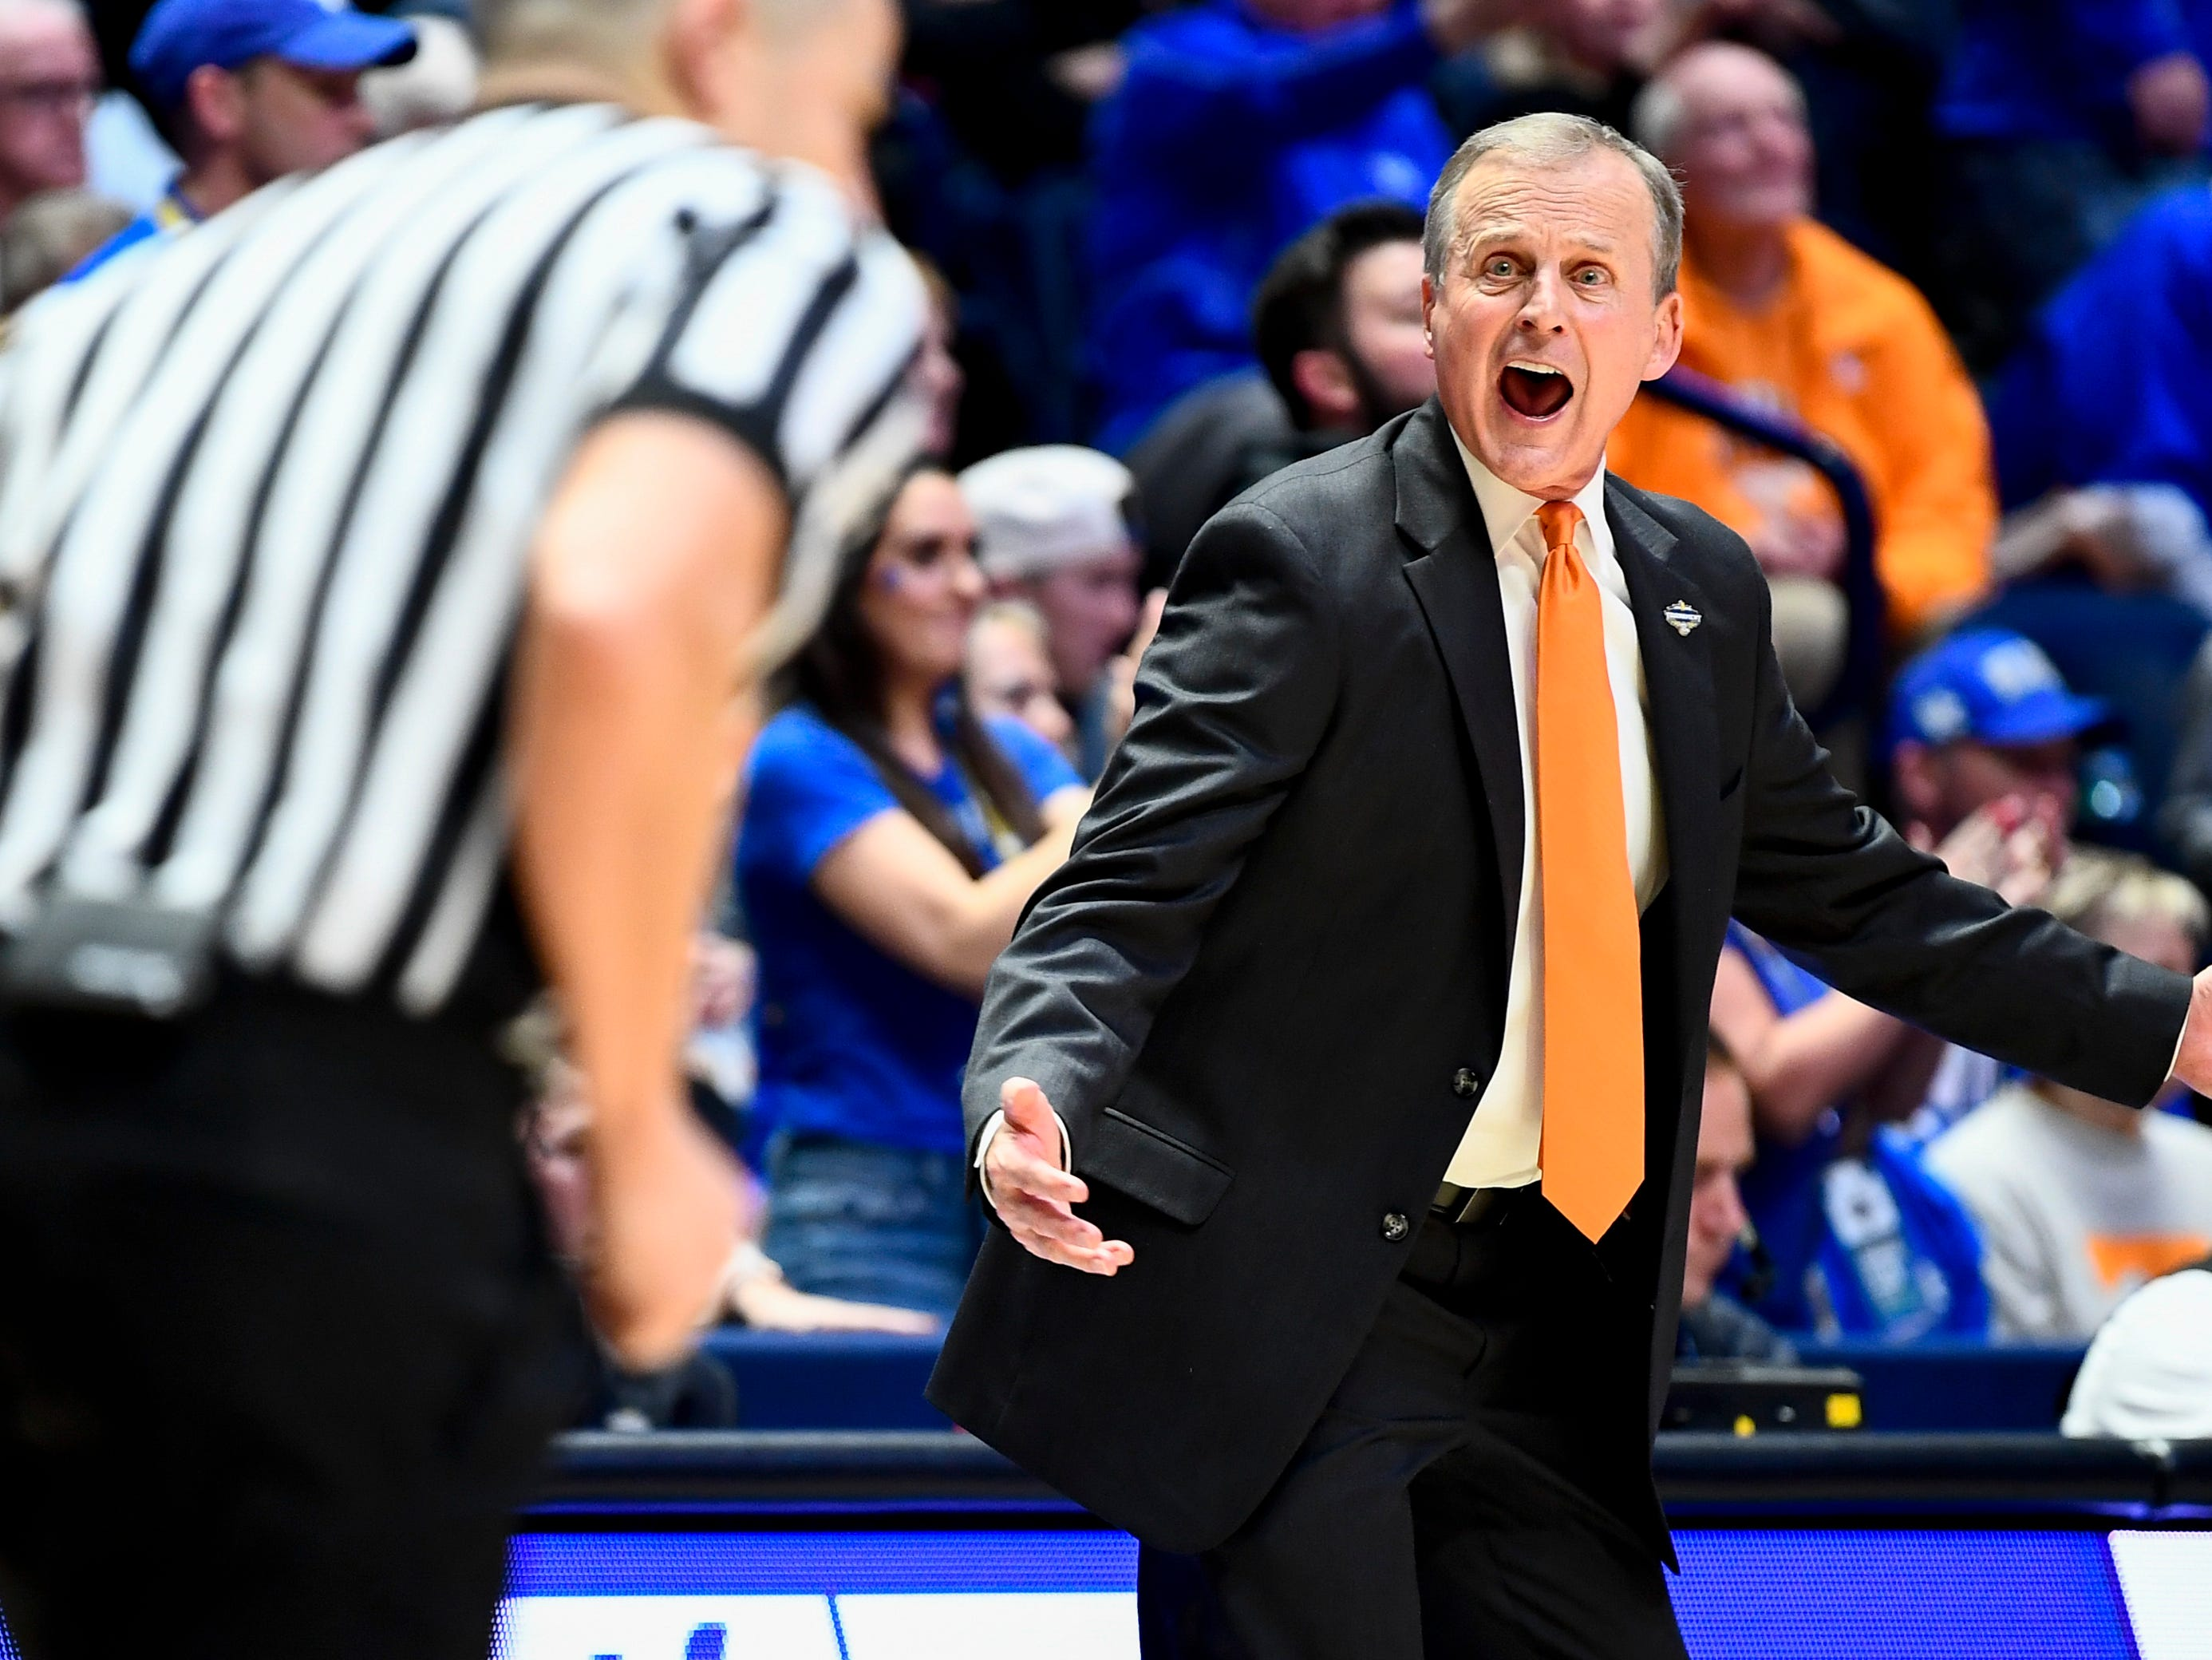 Tennessee head coach Rick Barnes reacts during the second half of the SEC Men's Basketball Tournament semifinal game against Kentucky at Bridgestone Arena in Nashville, Tenn., Saturday, March 16, 2019.